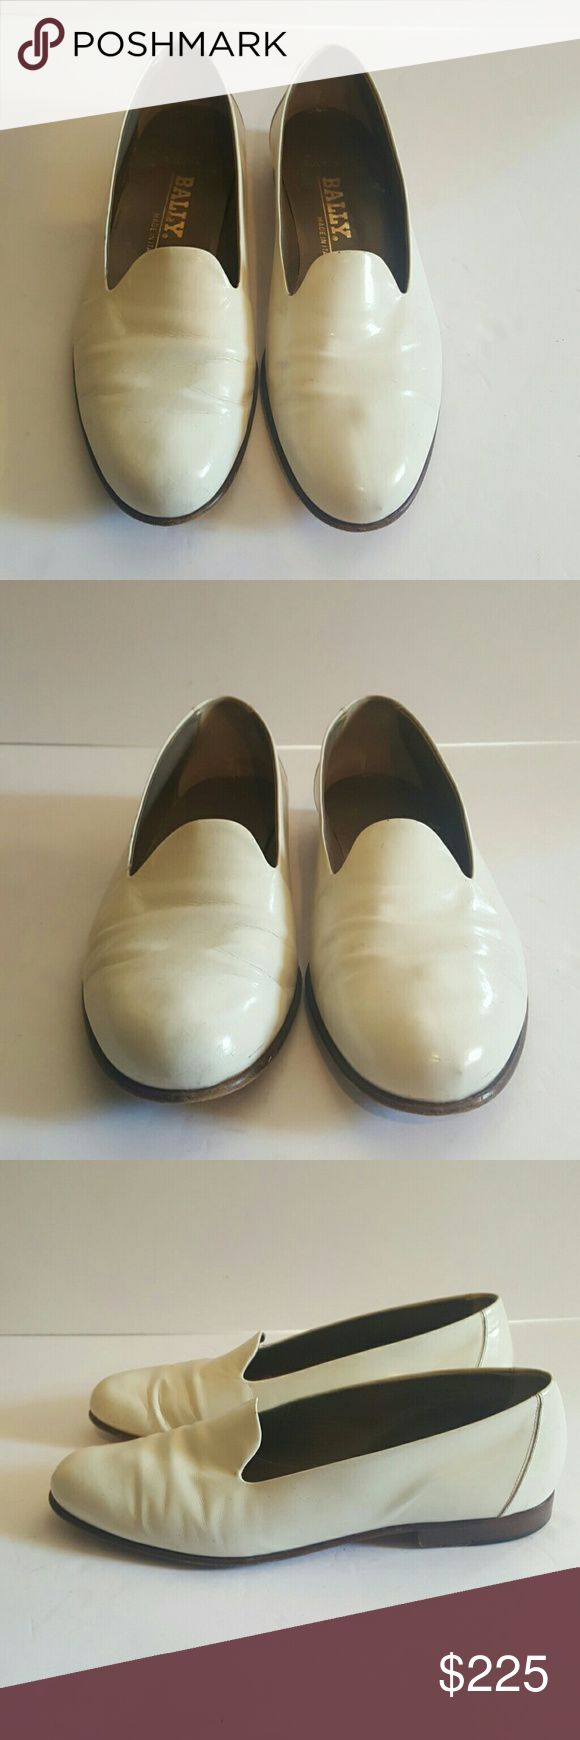 BALLY MENS 8.5 WHITE TUXEDO SHOES BALLY SULTAN MADE IN ITALY MENS 8.5 SMOKING SLIPPER OPERA SHOES DRESS SHOES WHITE LEATHER OFF WHITE EGGSHELL LOTS OF LIFE LEFT! Bally Shoes Loafers & Slip-Ons